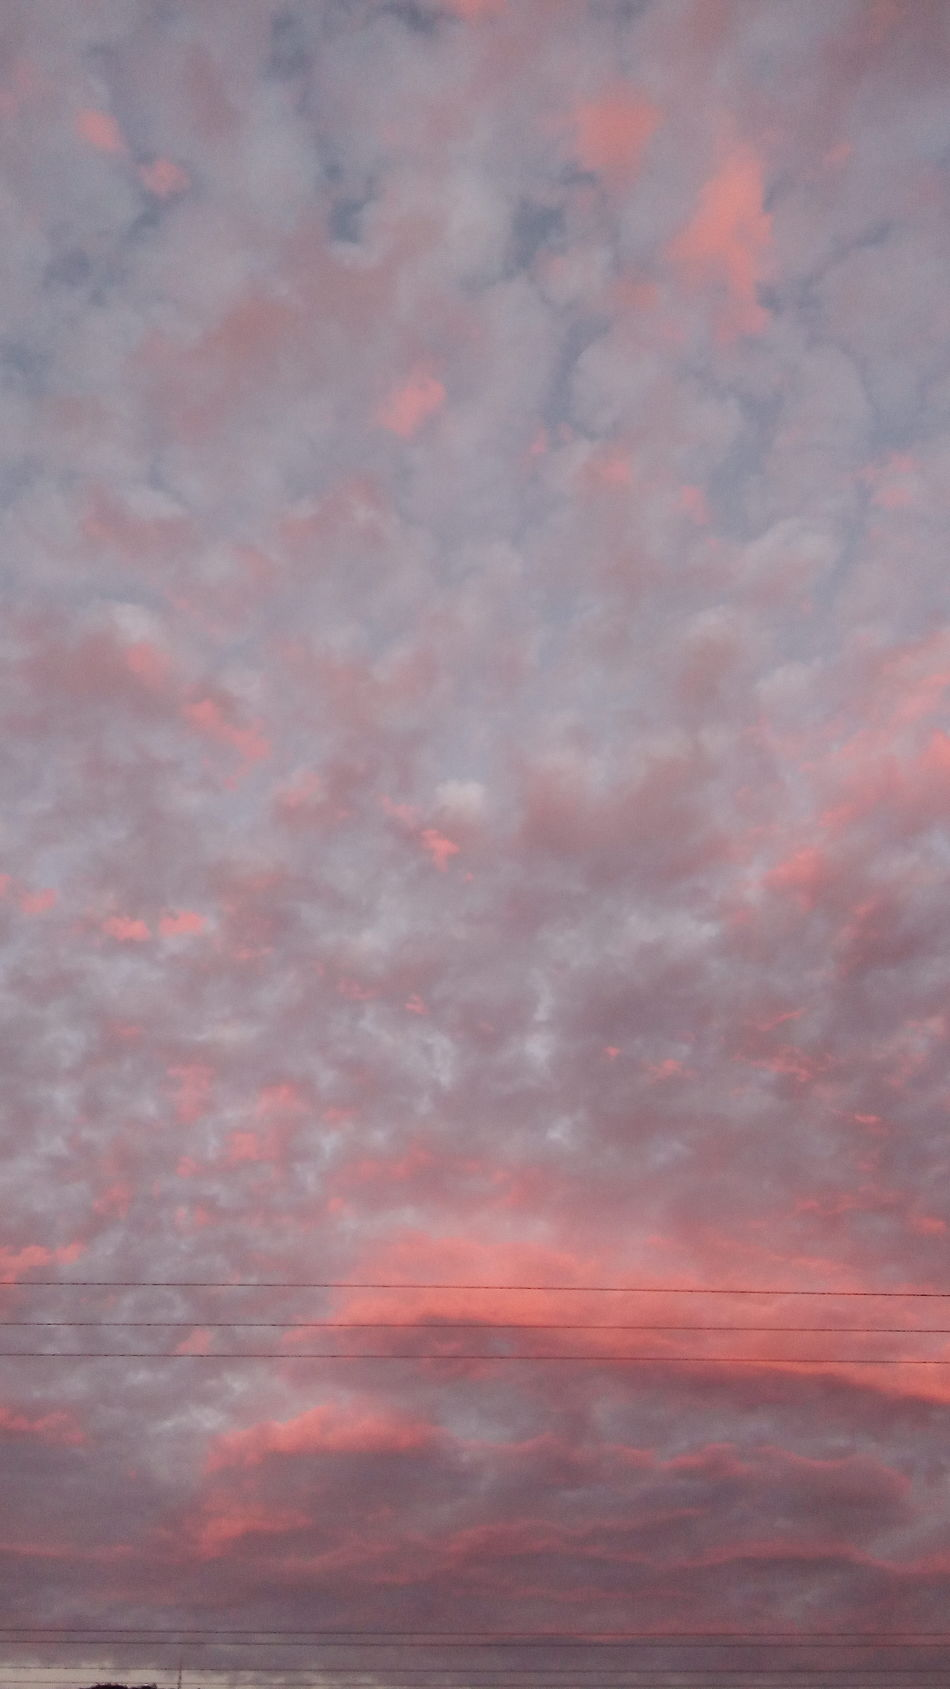 Red Clouds and powerlines,just past sunset. Red Pink Color Backgrounds No People Multi Colored Sunset Nature Sky Abstract Outdoors Water Beauty In Nature Day Powerlinesaresoscenic sunset #sun #clouds #skylovers #sky #nature #beautifulinnature #naturalbeauty photography landscape